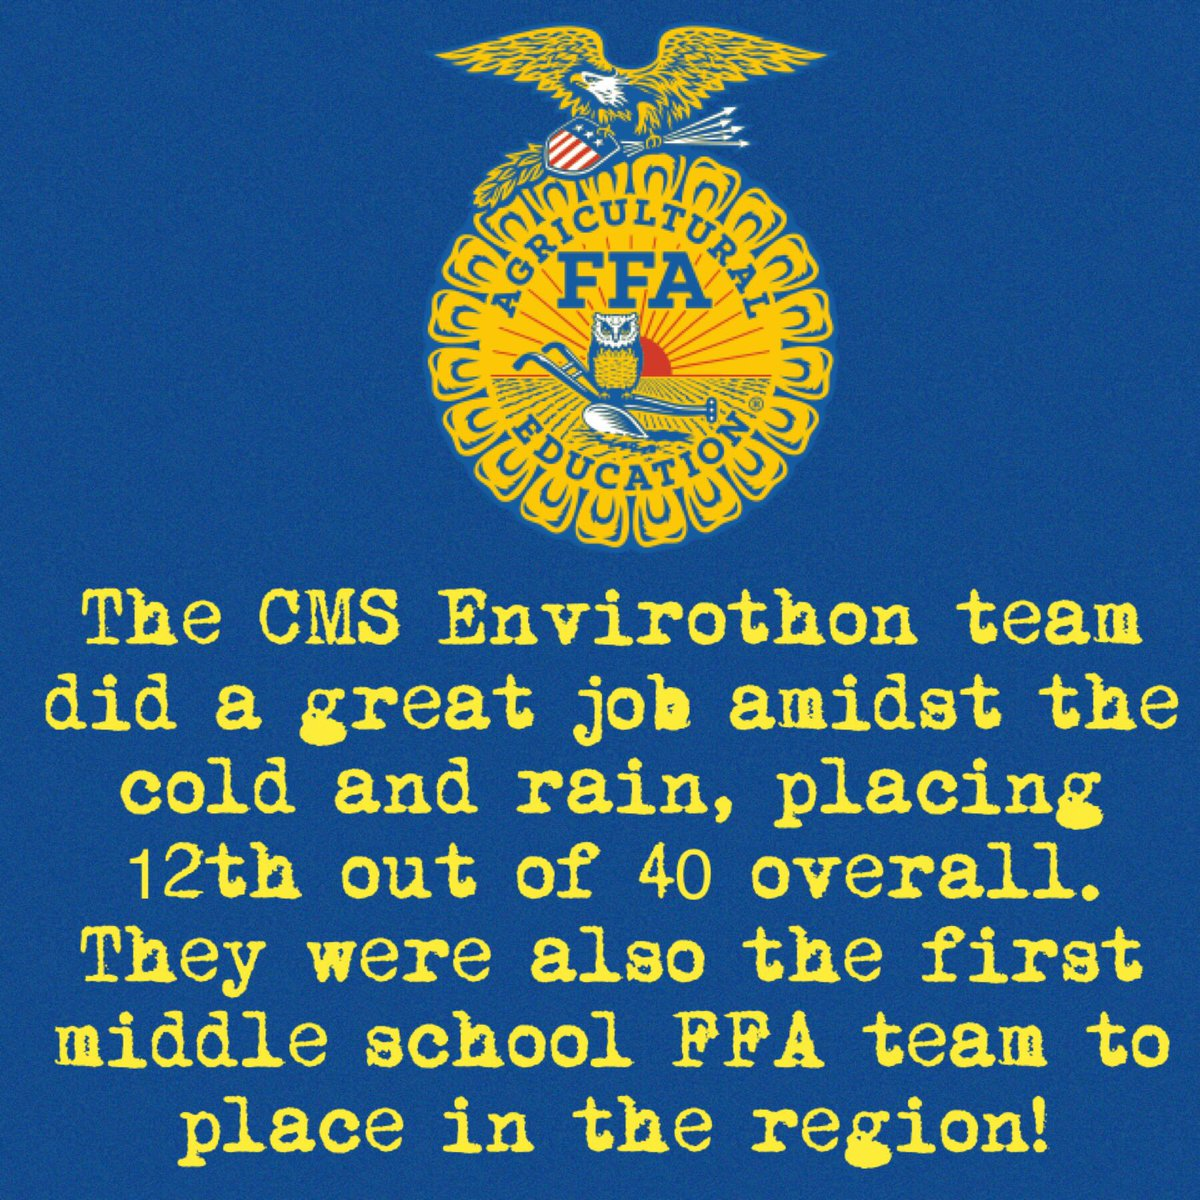 We're so proud of our FFA Envirothon team, who placed 12th out of 40 on Thursday and were also the first middle school FFA team to place in the region!! Great day overall! @amandaturner23 @allisonjdunn #cmsffa #watchussoar <br>http://pic.twitter.com/ObiLEstq6x